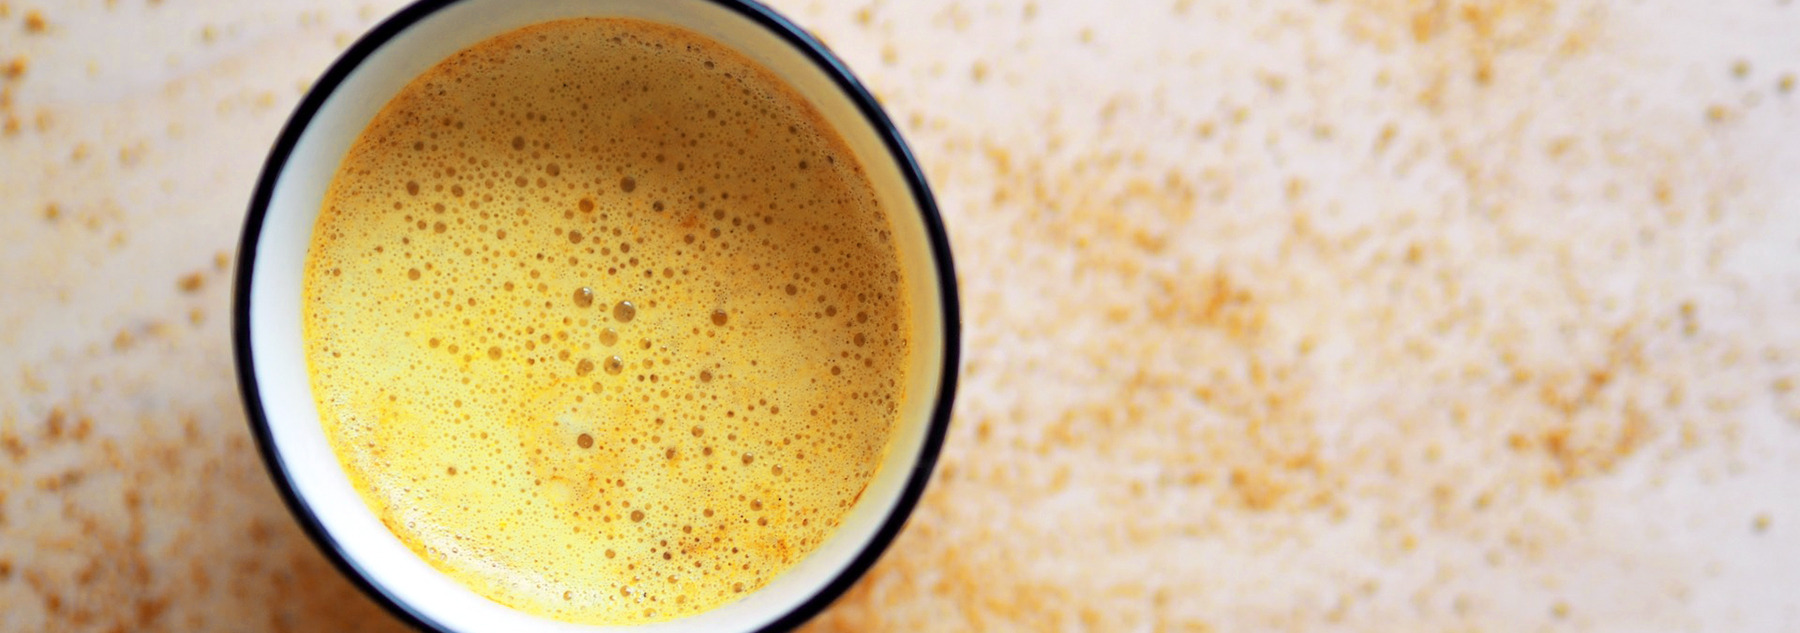 This Pumpkin Spice Latte Recipe Is the Perfect Answer to a Chilly Fall Day